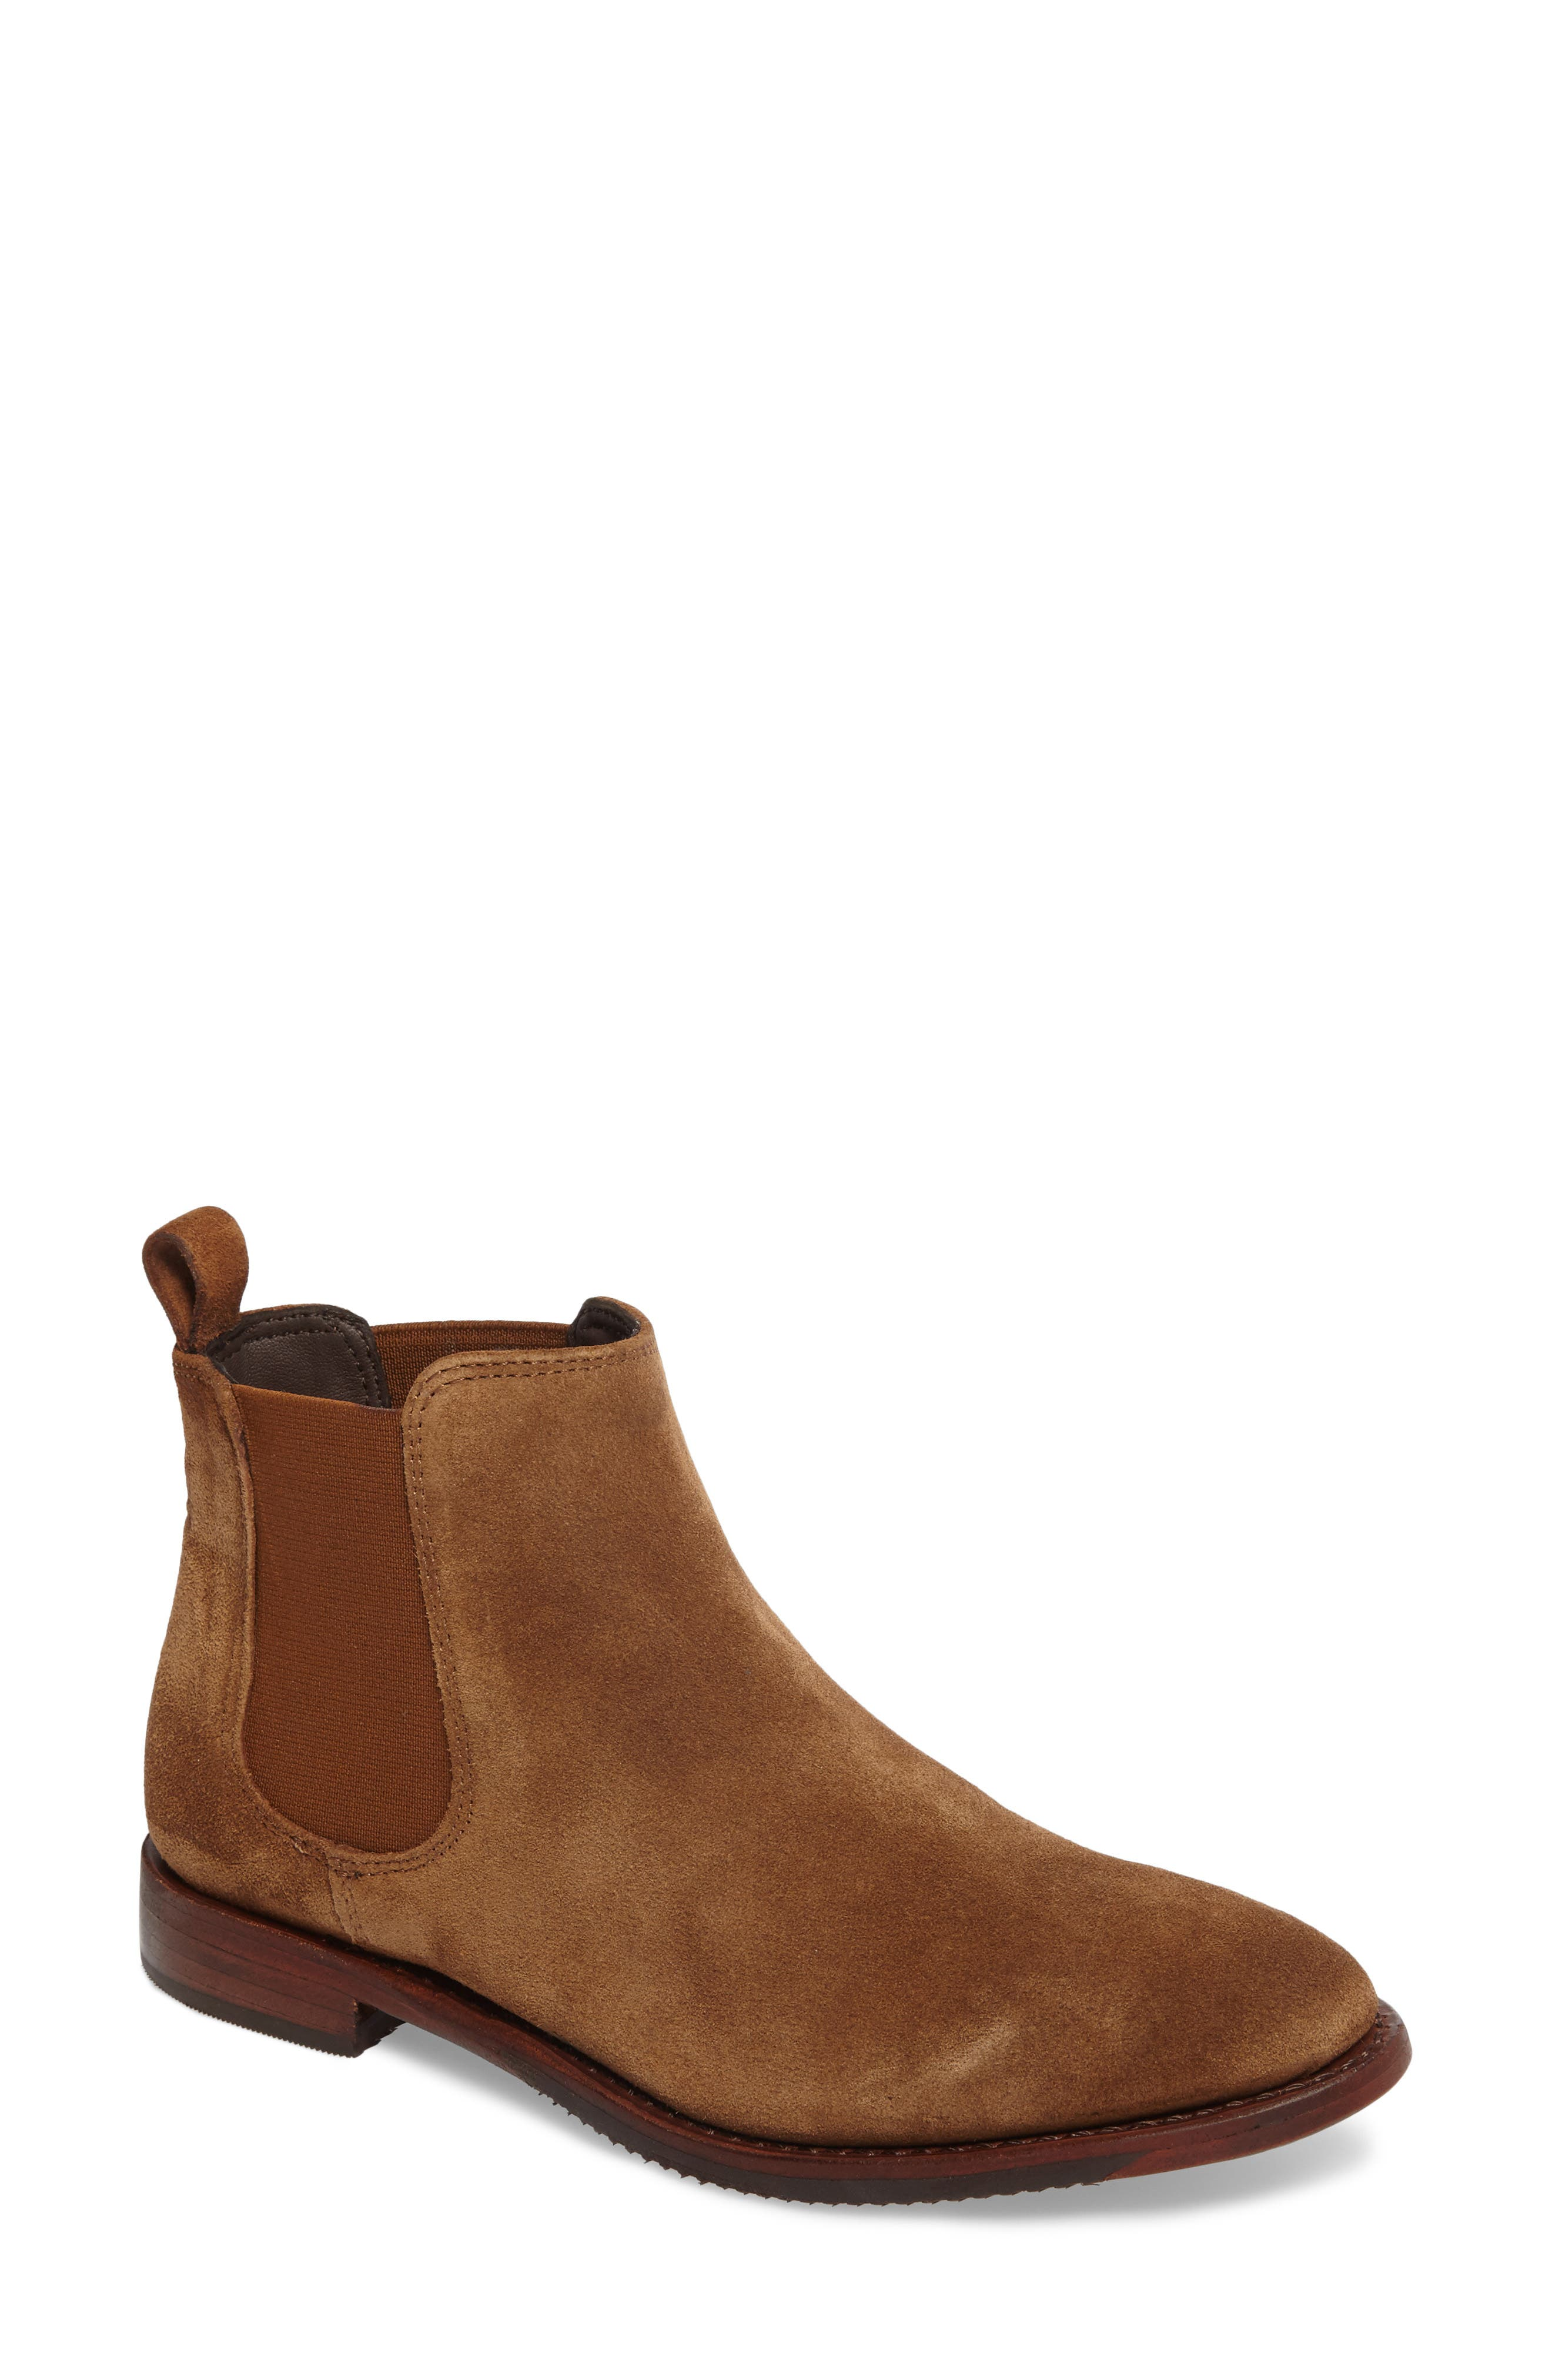 Gabrielle Chelsea Boot,                             Main thumbnail 1, color,                             Brown Suede